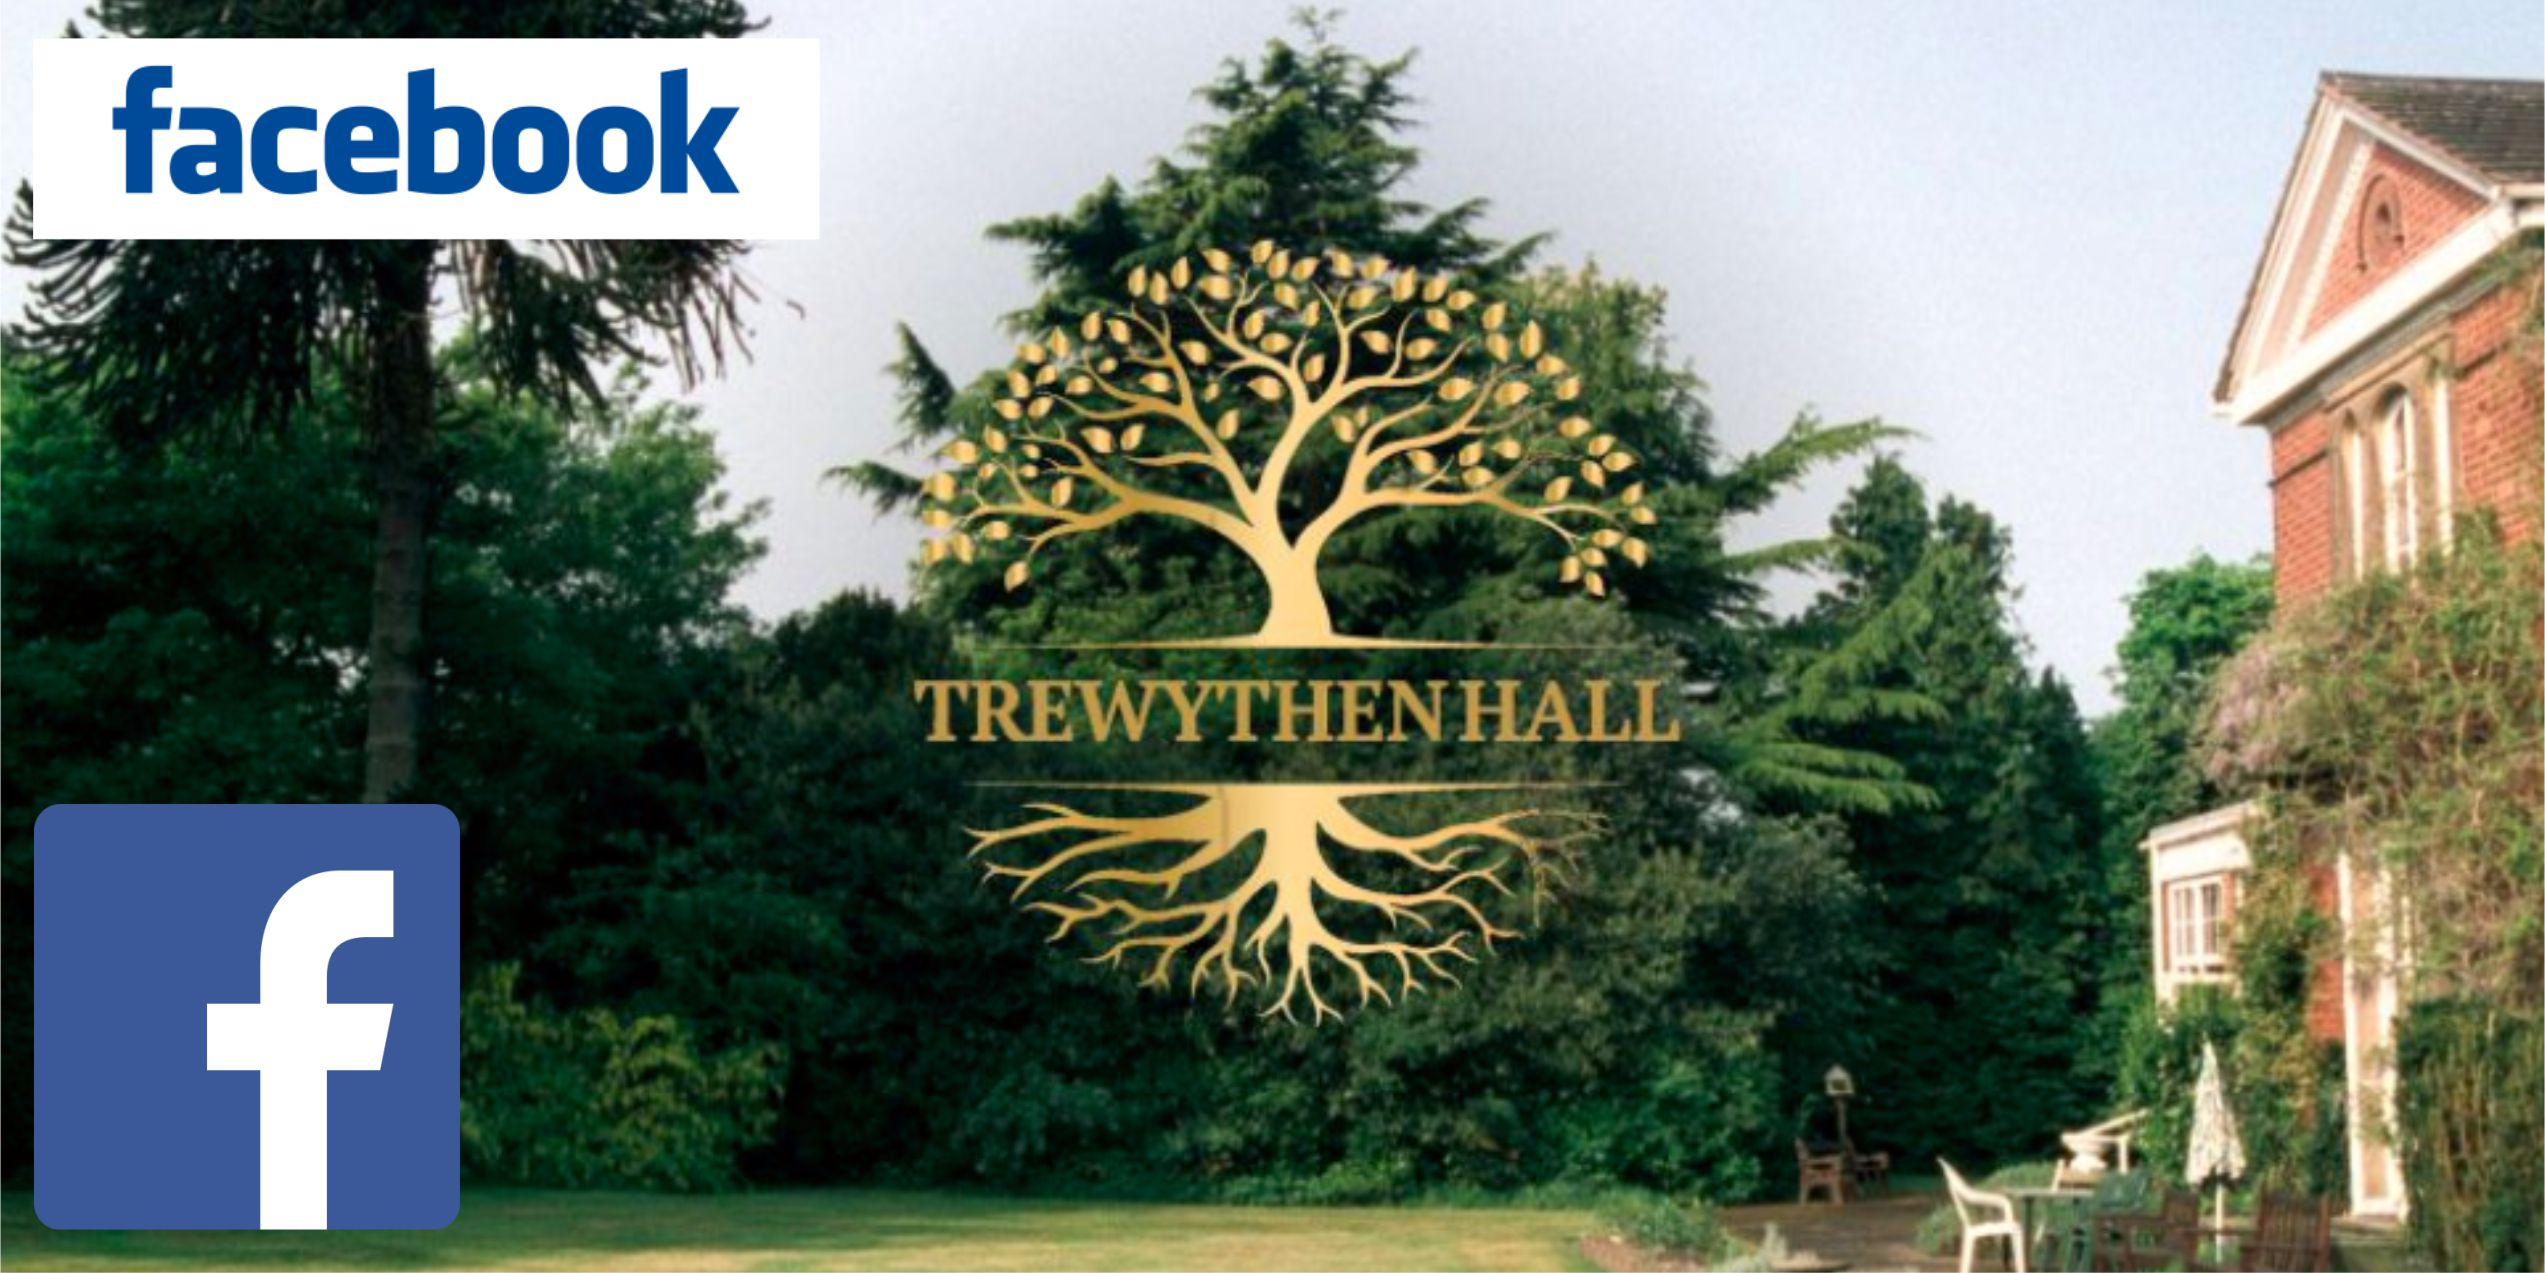 Trewythen Hall Facebook